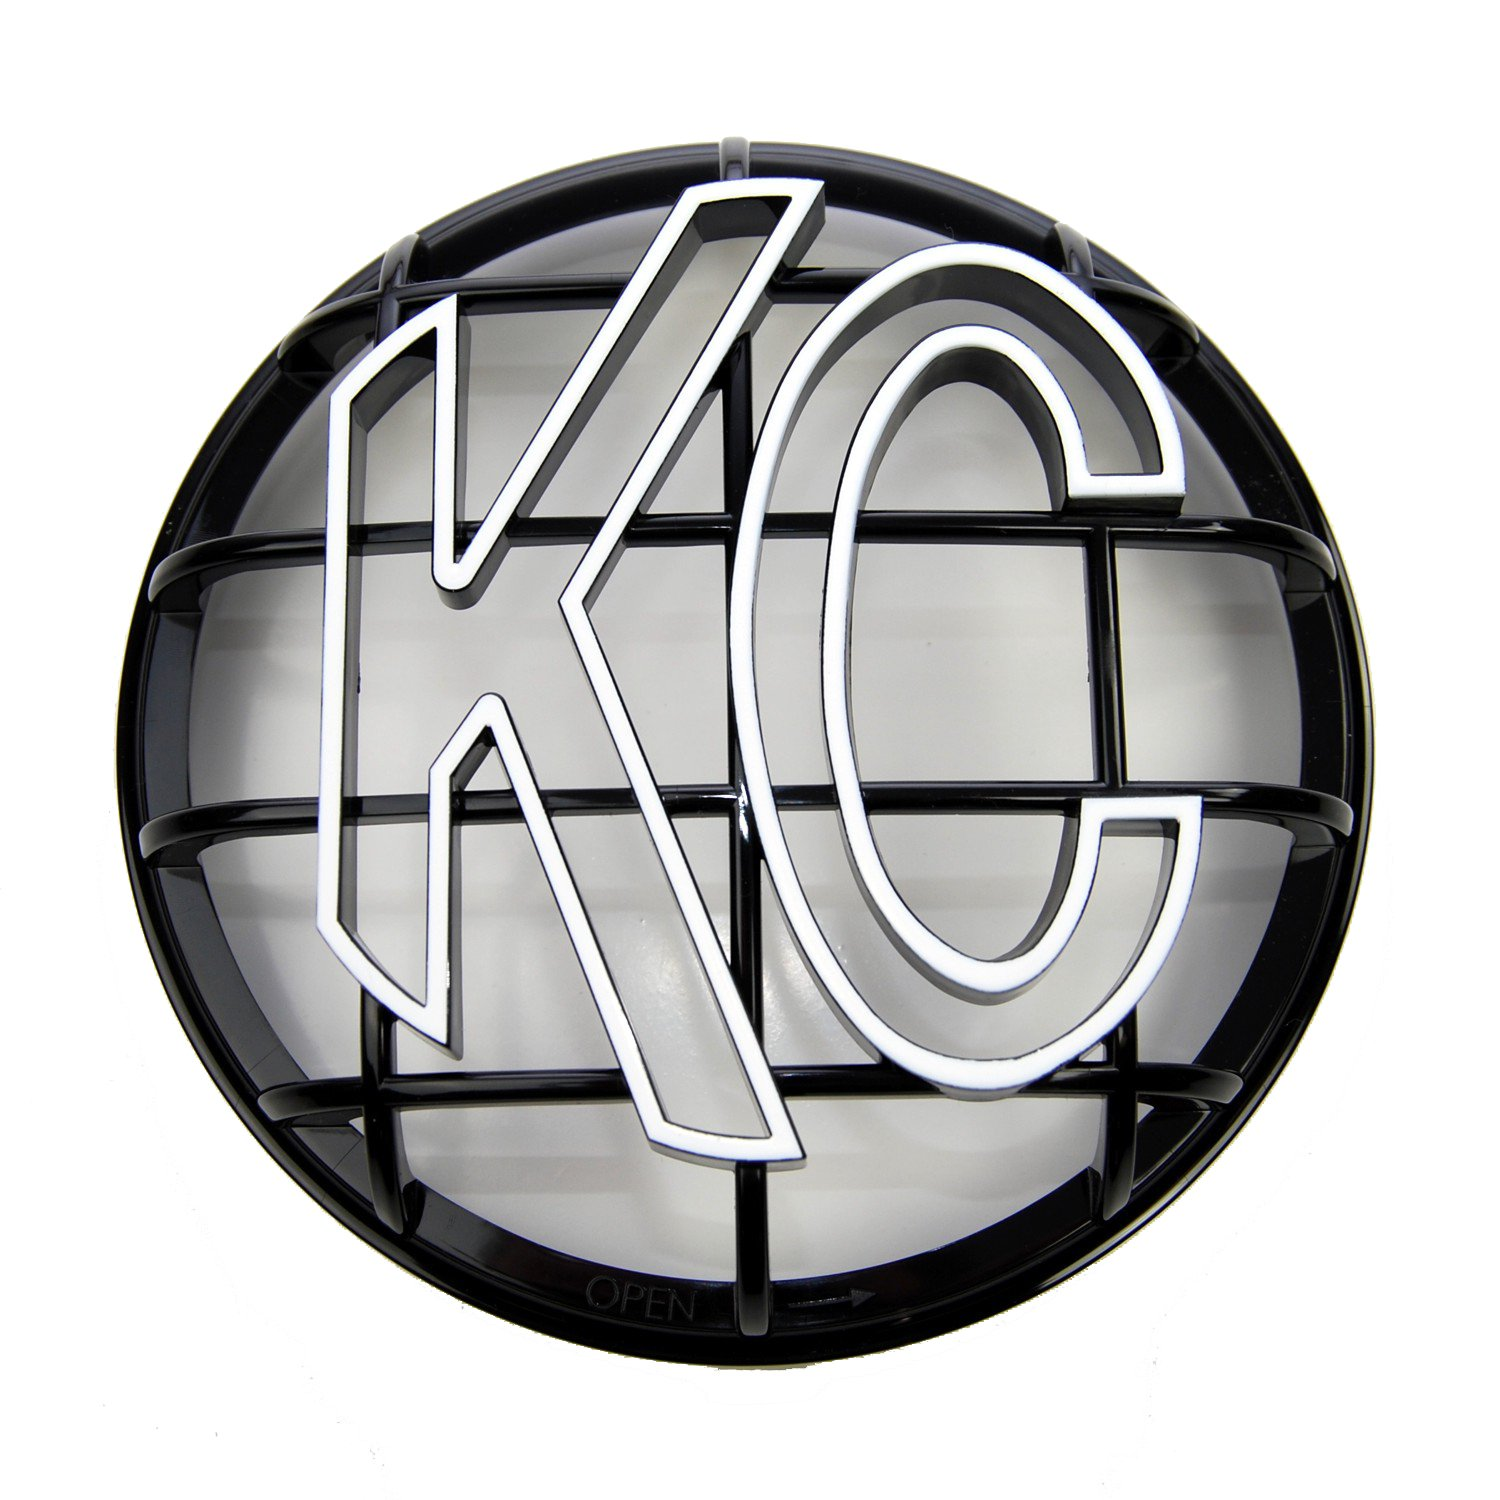 KC Hilites 7216 Apollo Black 6' ABS Stone Guard